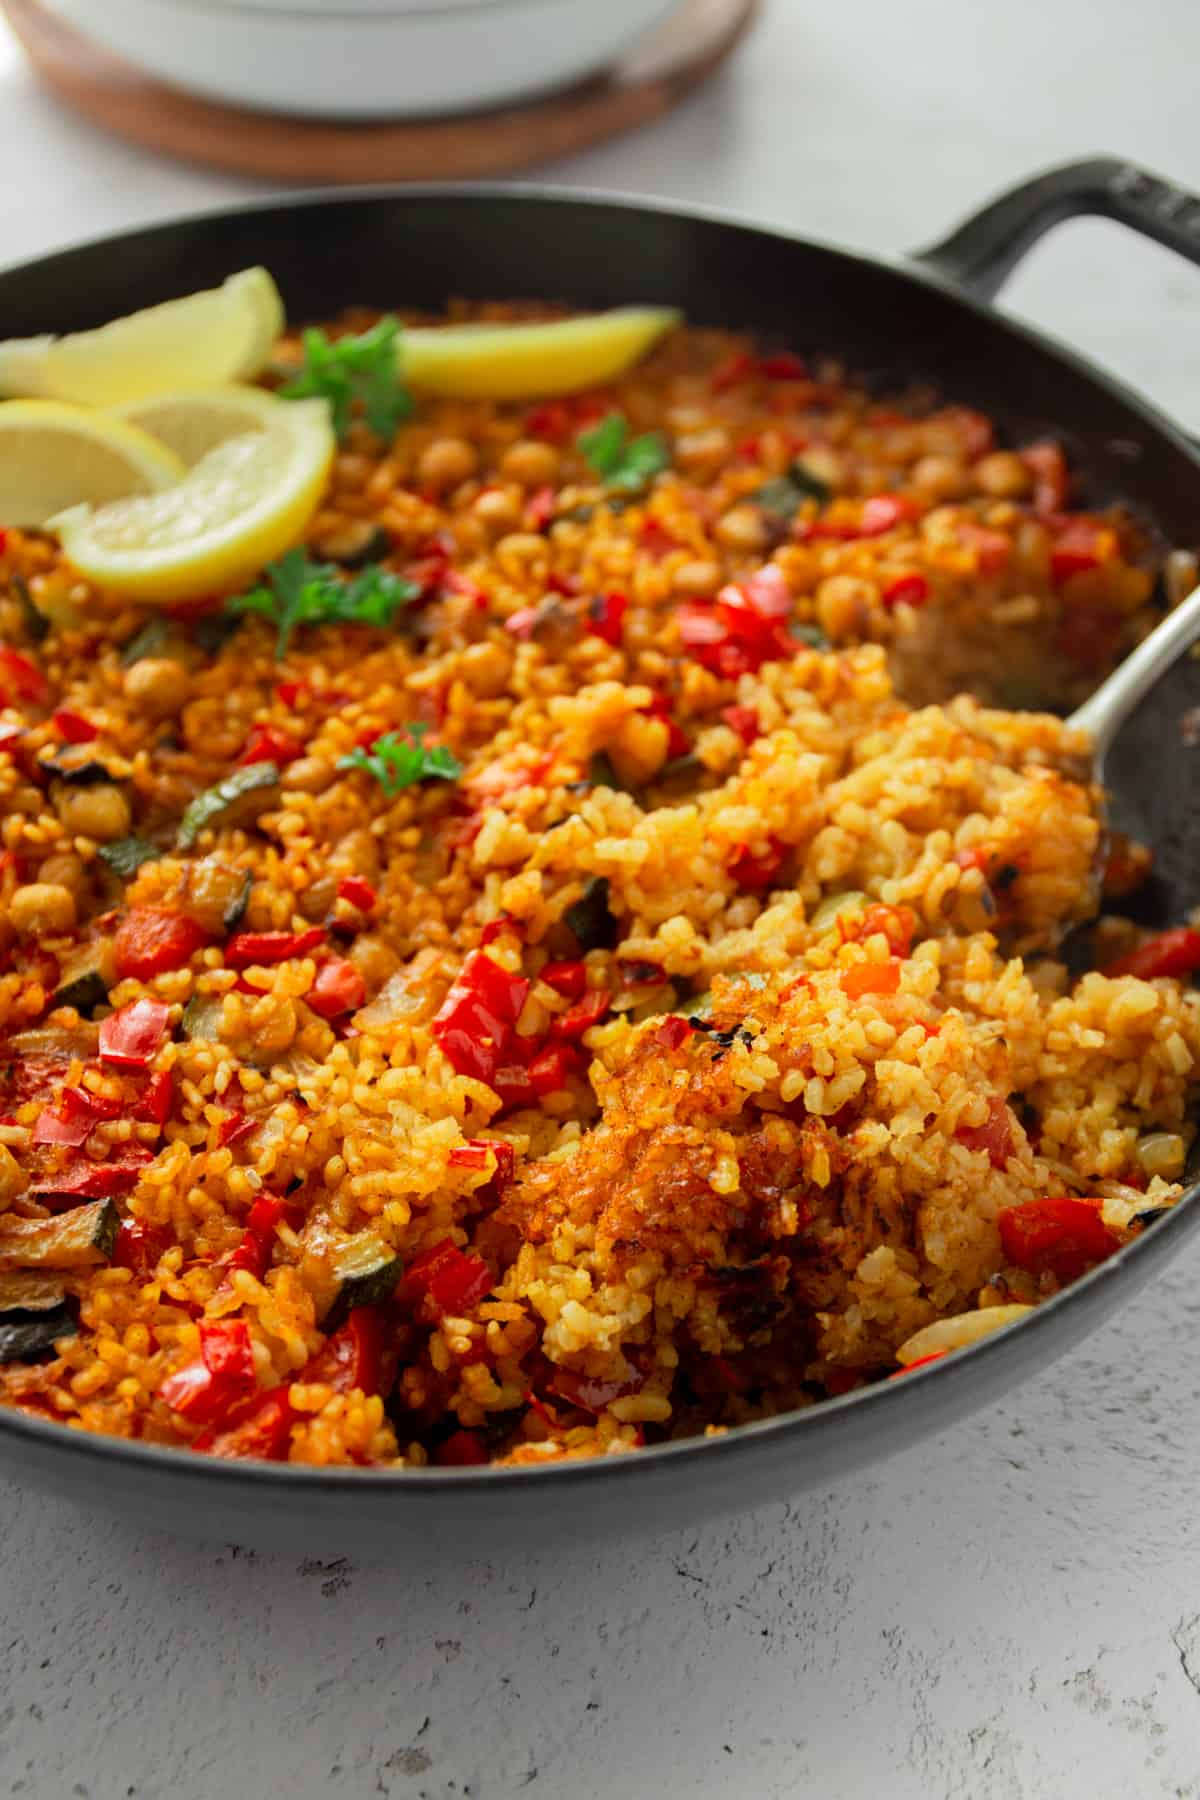 a spoon in a pan of vegetable paella